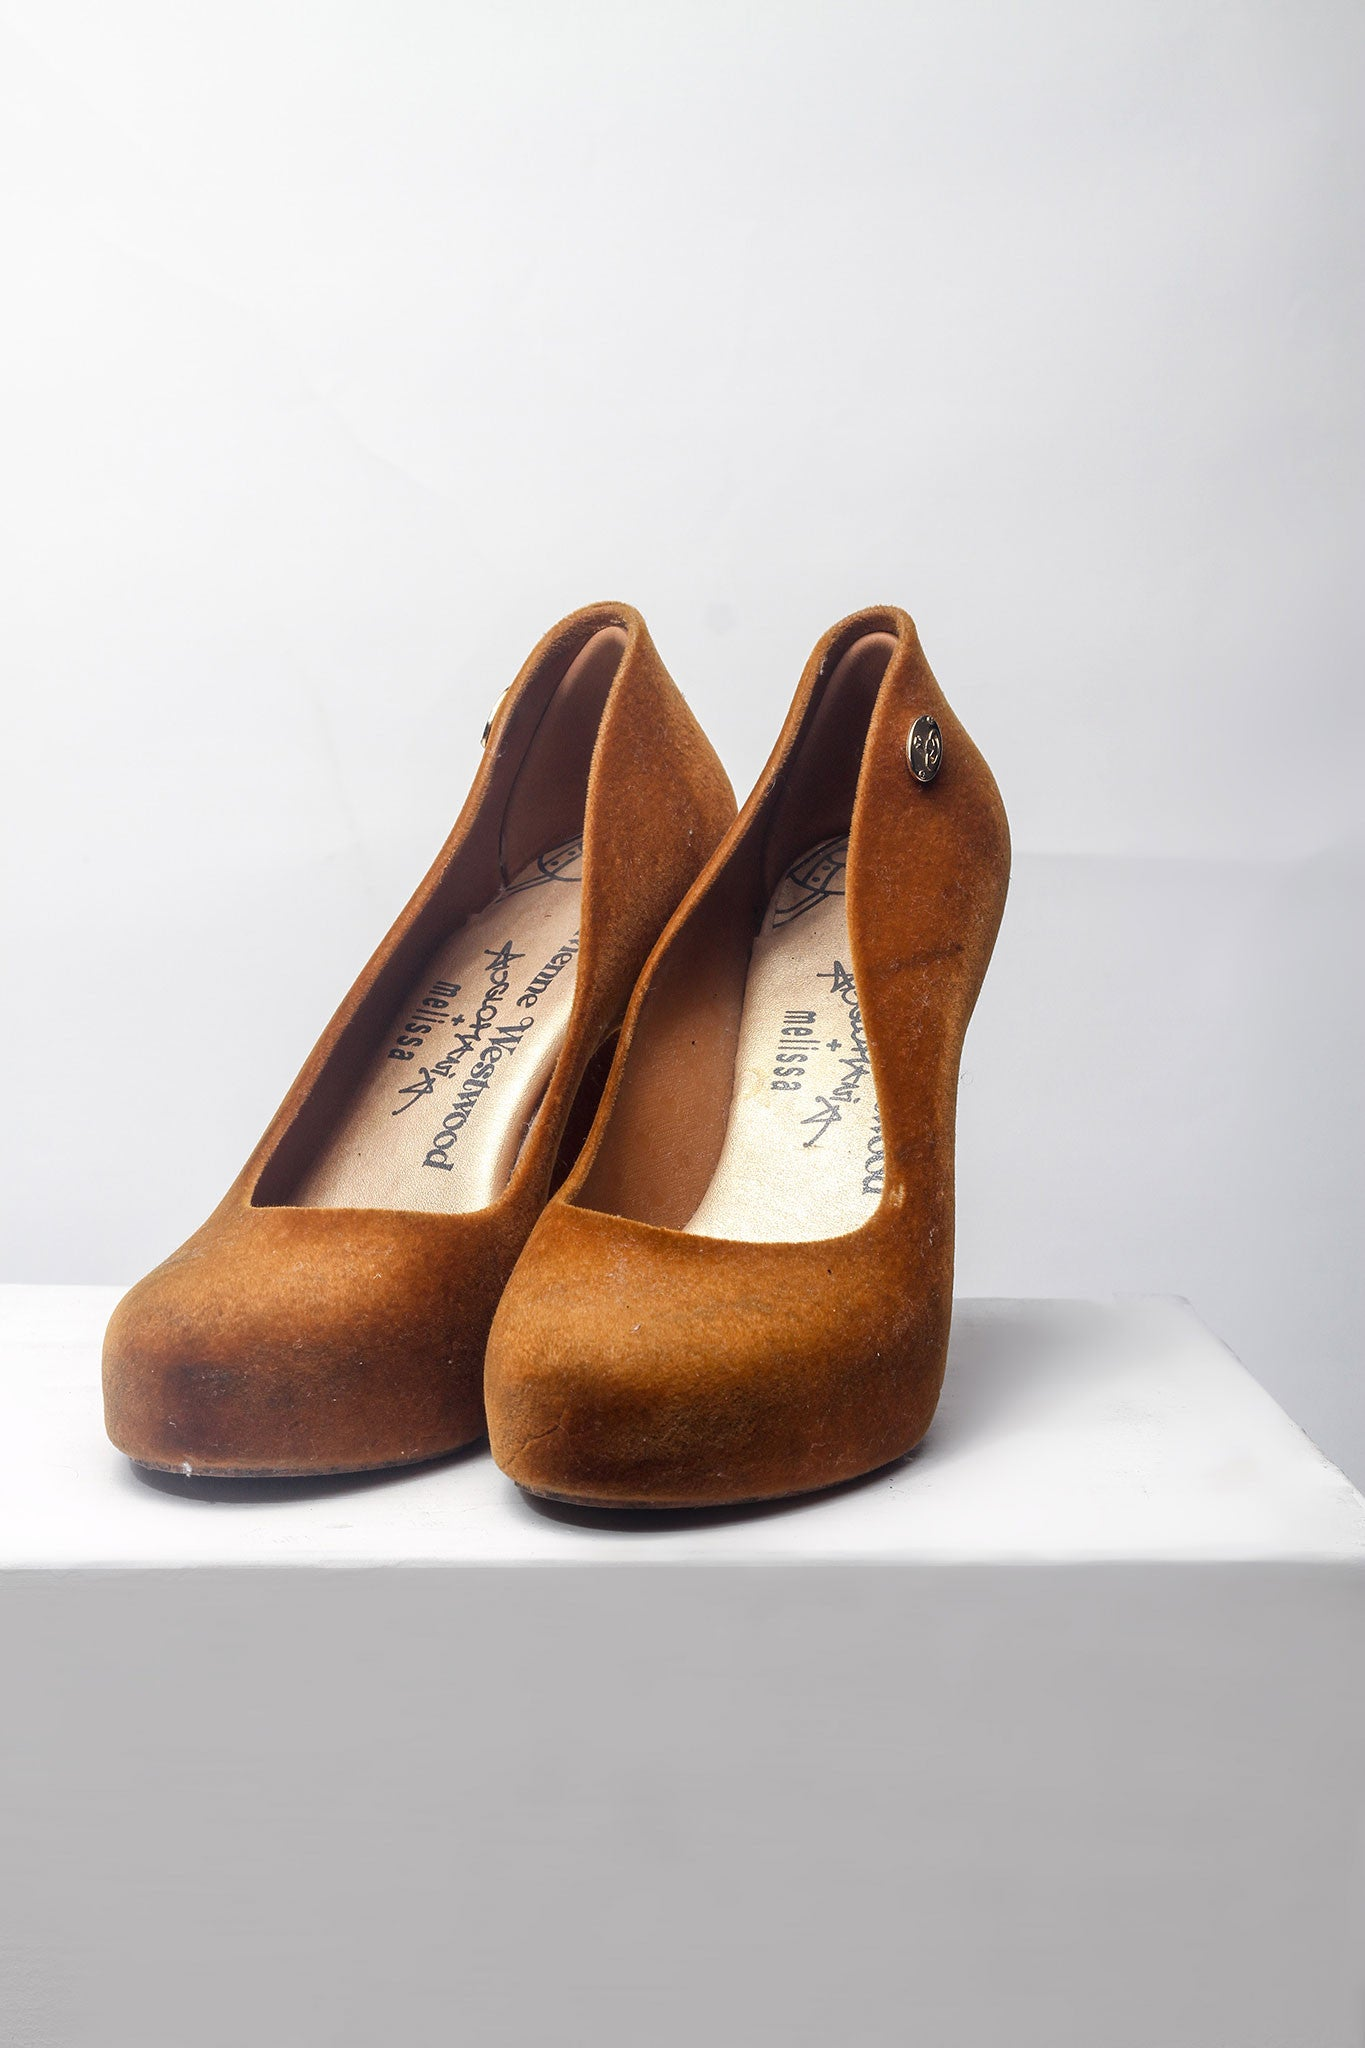 Velvet Pumps by Vivienne Westwood